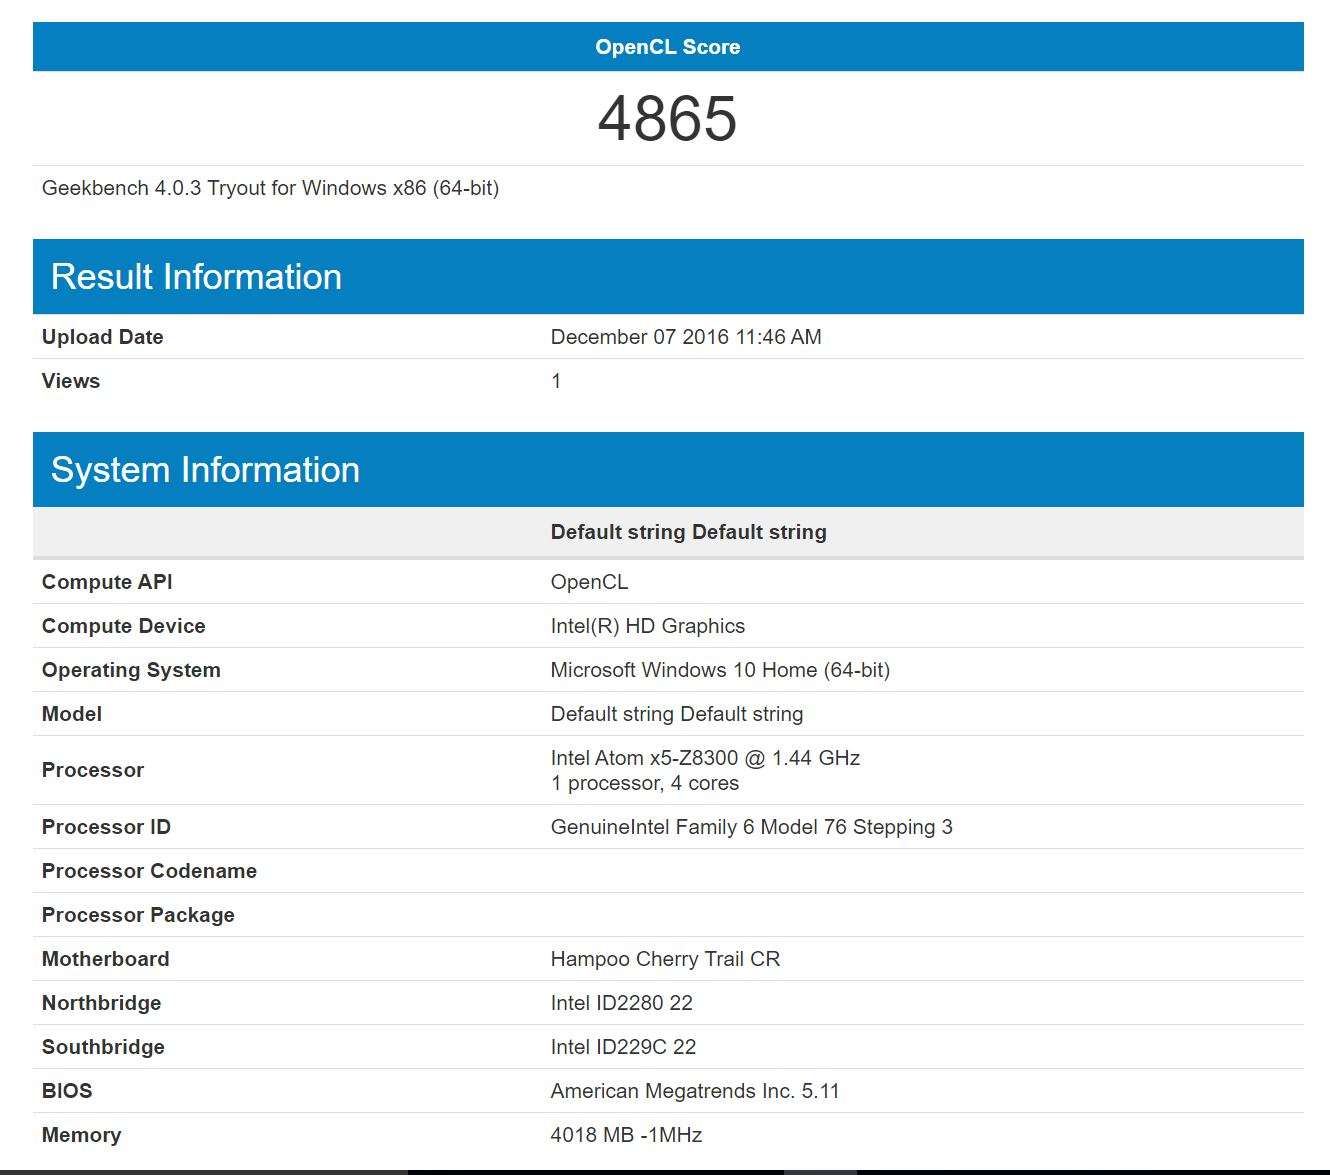 Chuwi Hi12 Geekbench 4 Windows